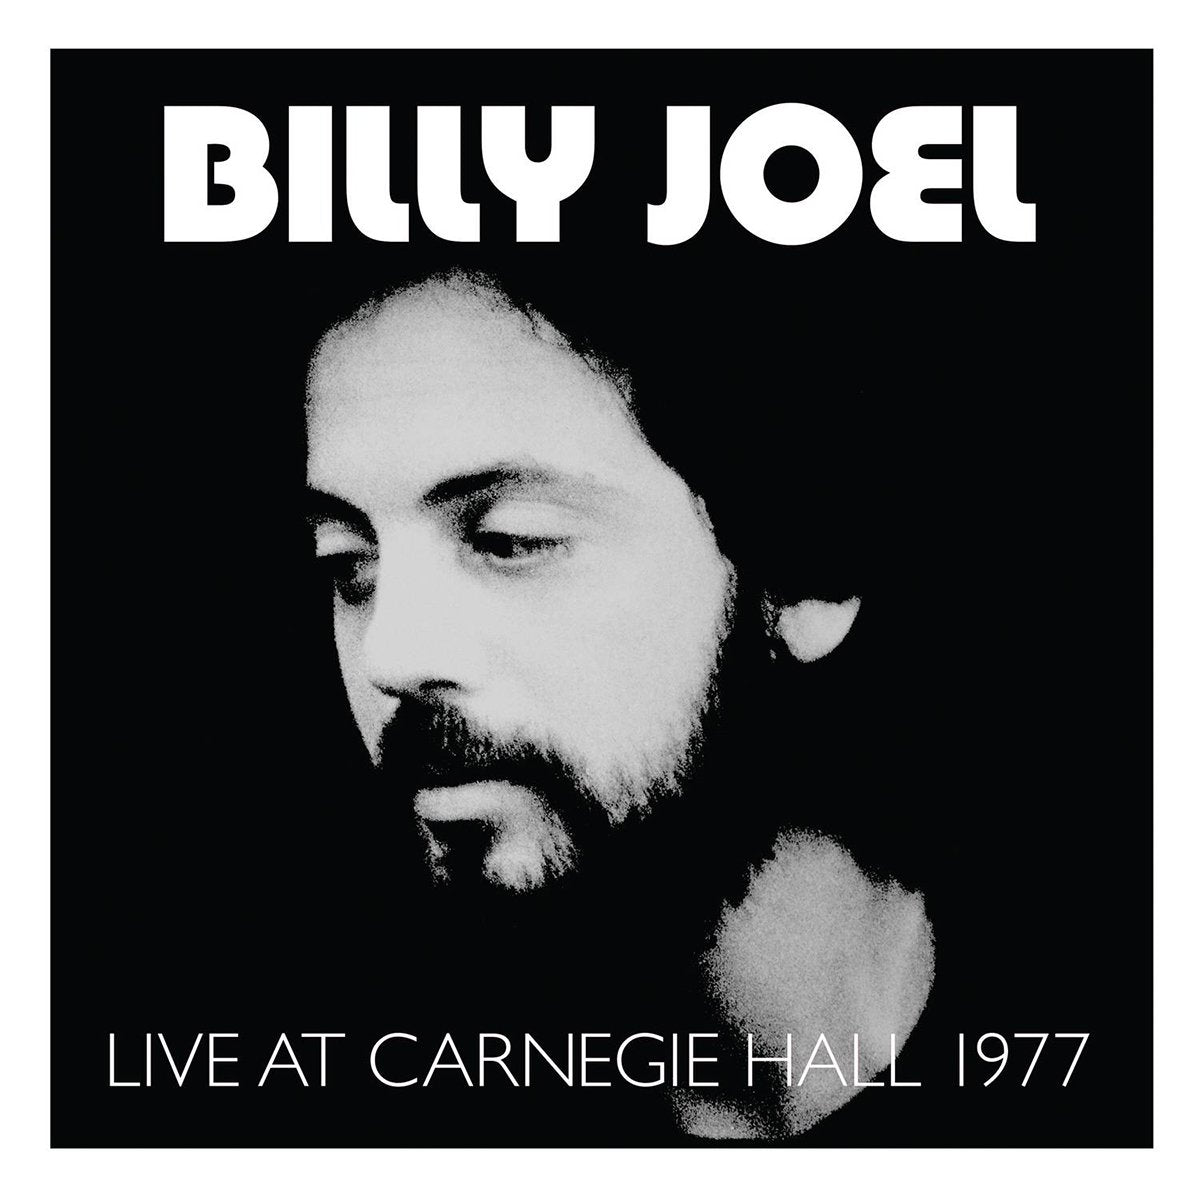 Billy Joel: Live At Carnegie Hall 1977 Vinyl 2LP (Record Store Day)